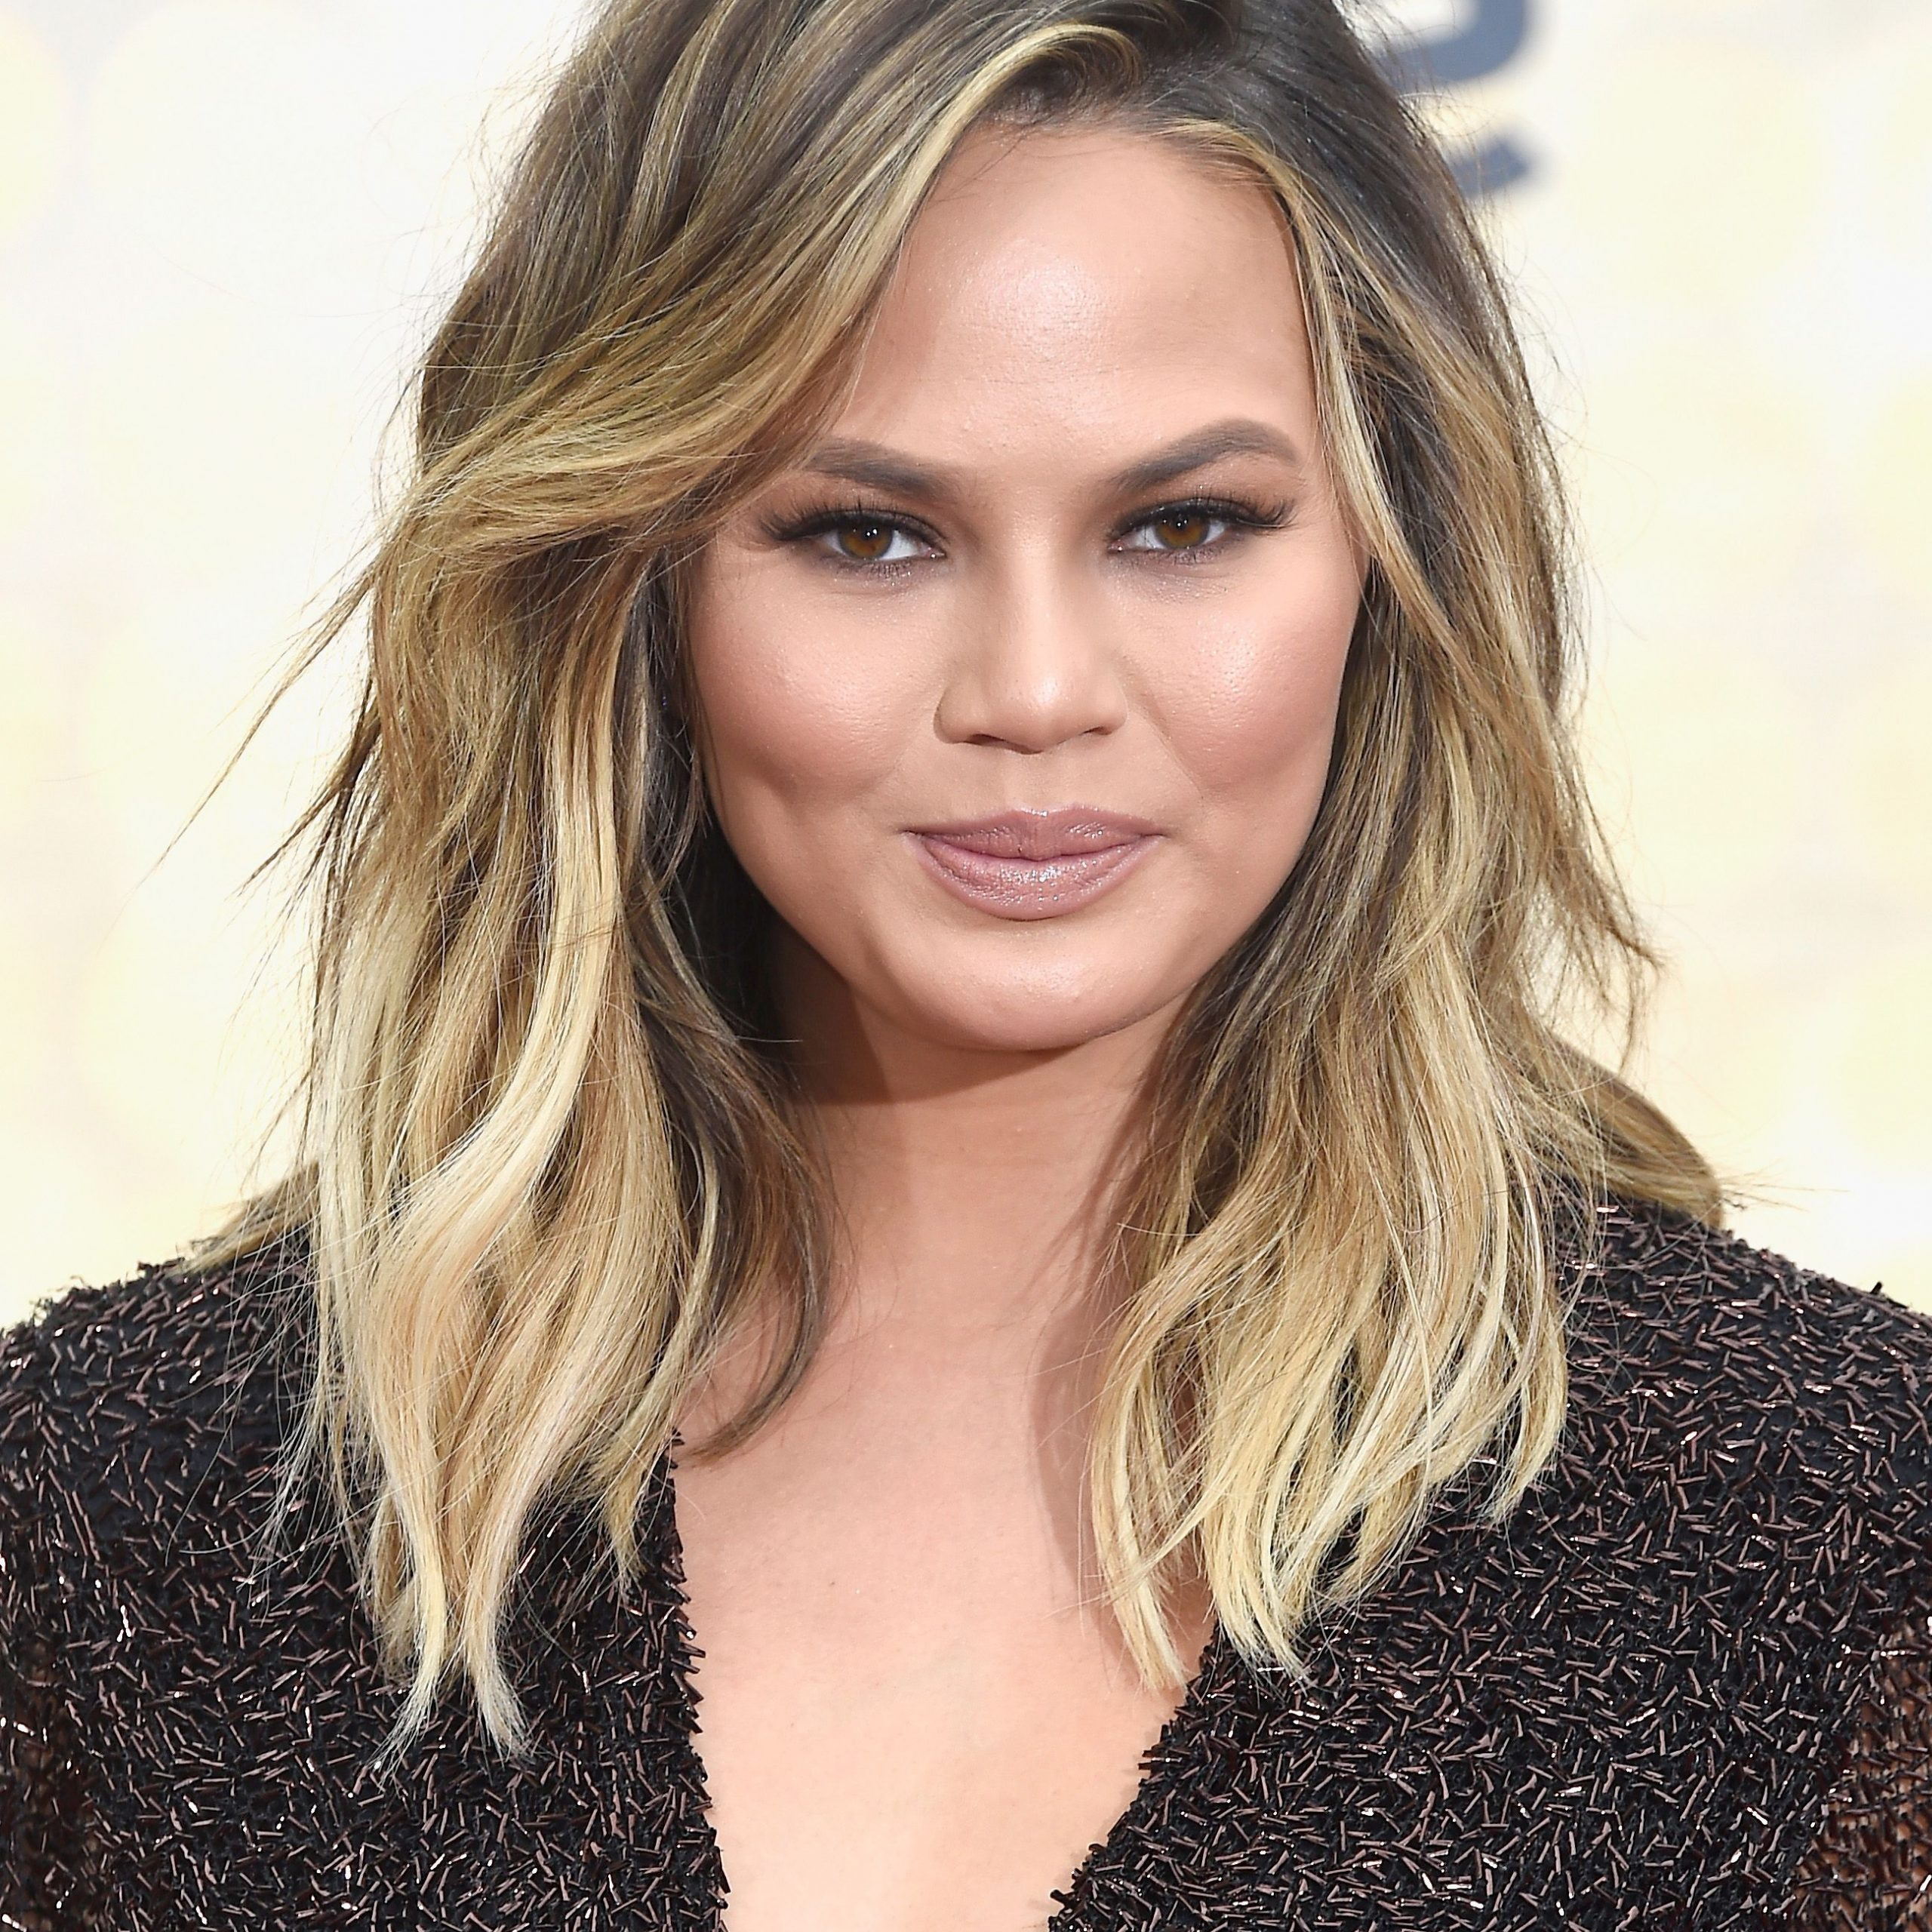 25 Short Hairstyles For Round Faces That Enhance Your Throughout Well Known Bob Hairstyles For A Chubby Face (View 2 of 20)